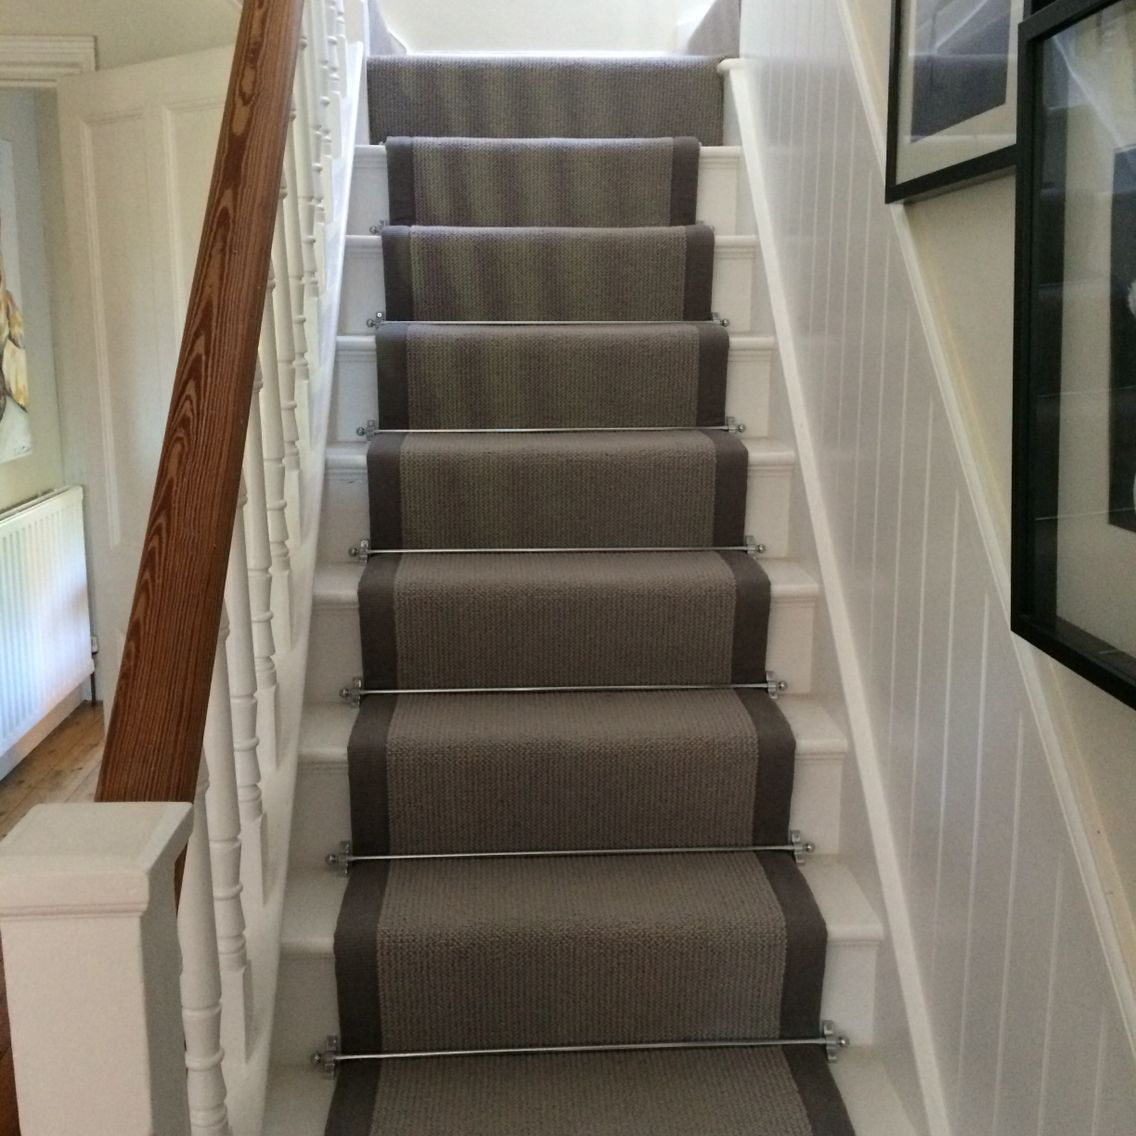 Best Pennells Carpets Grey Stair Runner With Chrome Bars 400 x 300